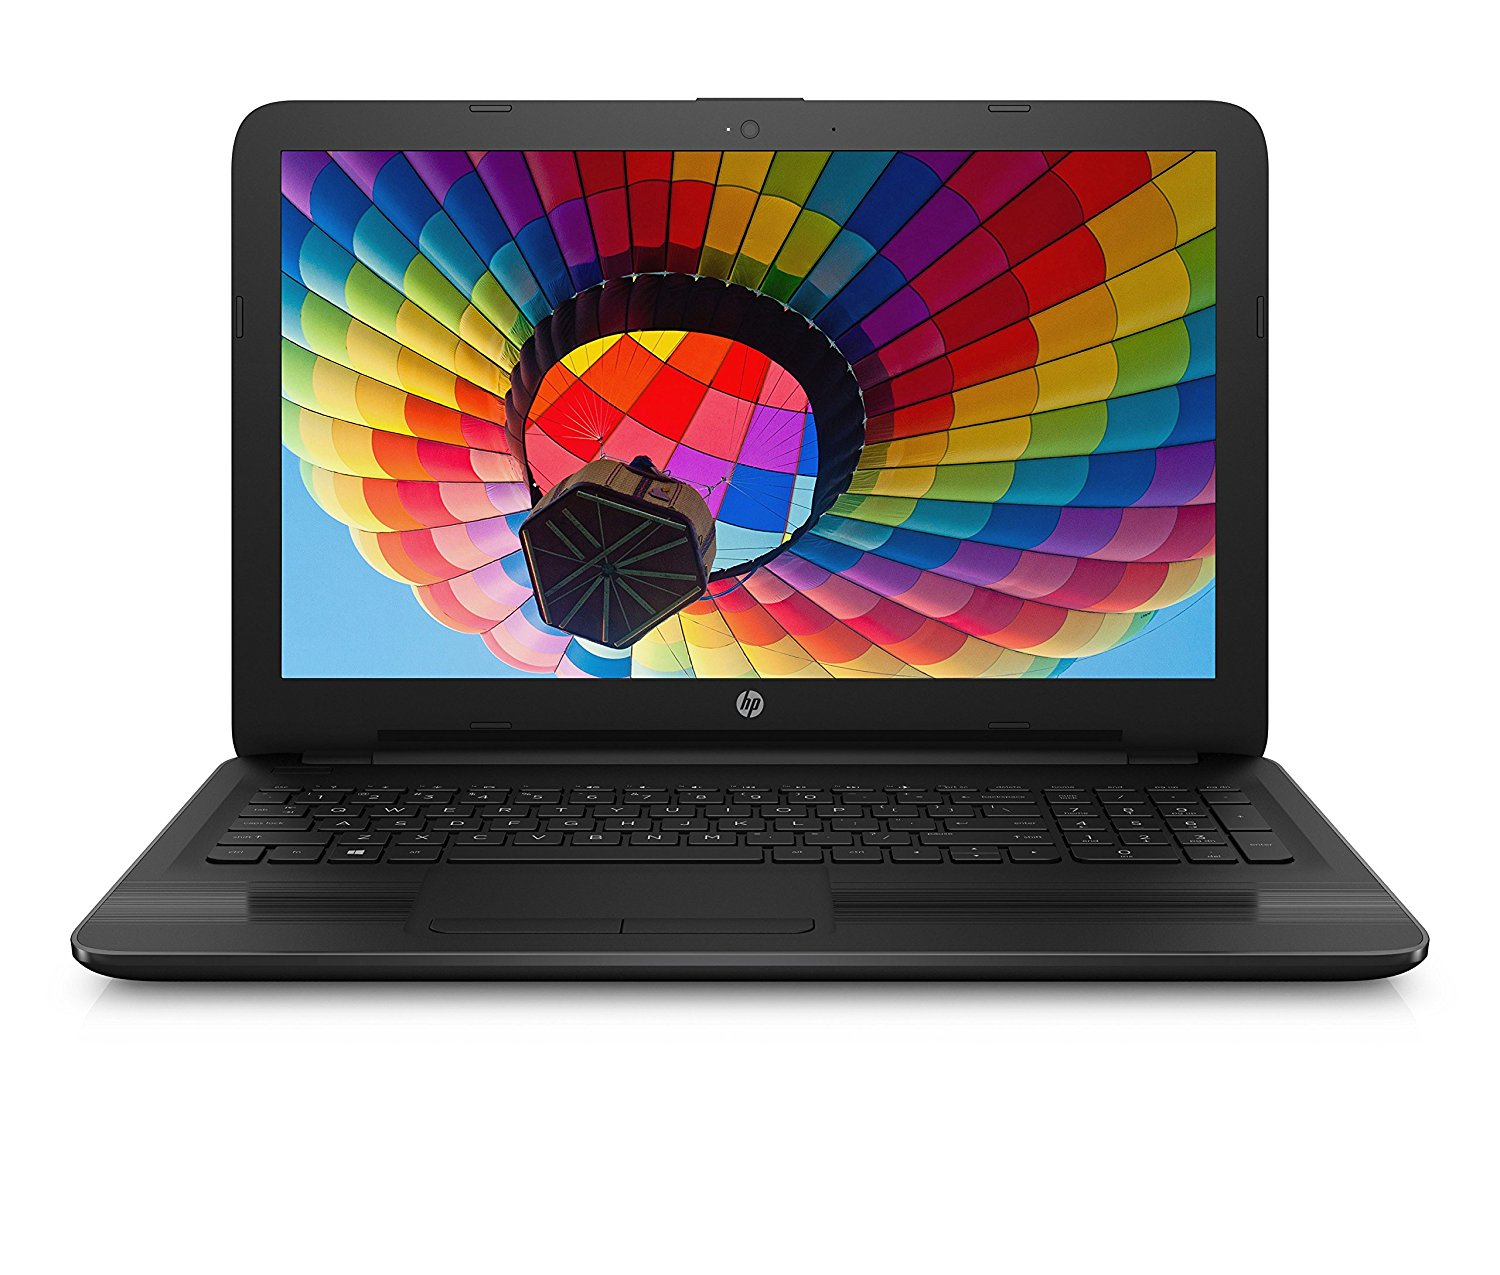 HP Notebook Laptop 15.6 HD Vibrant Display Quad Core AMD E2-7110 APU